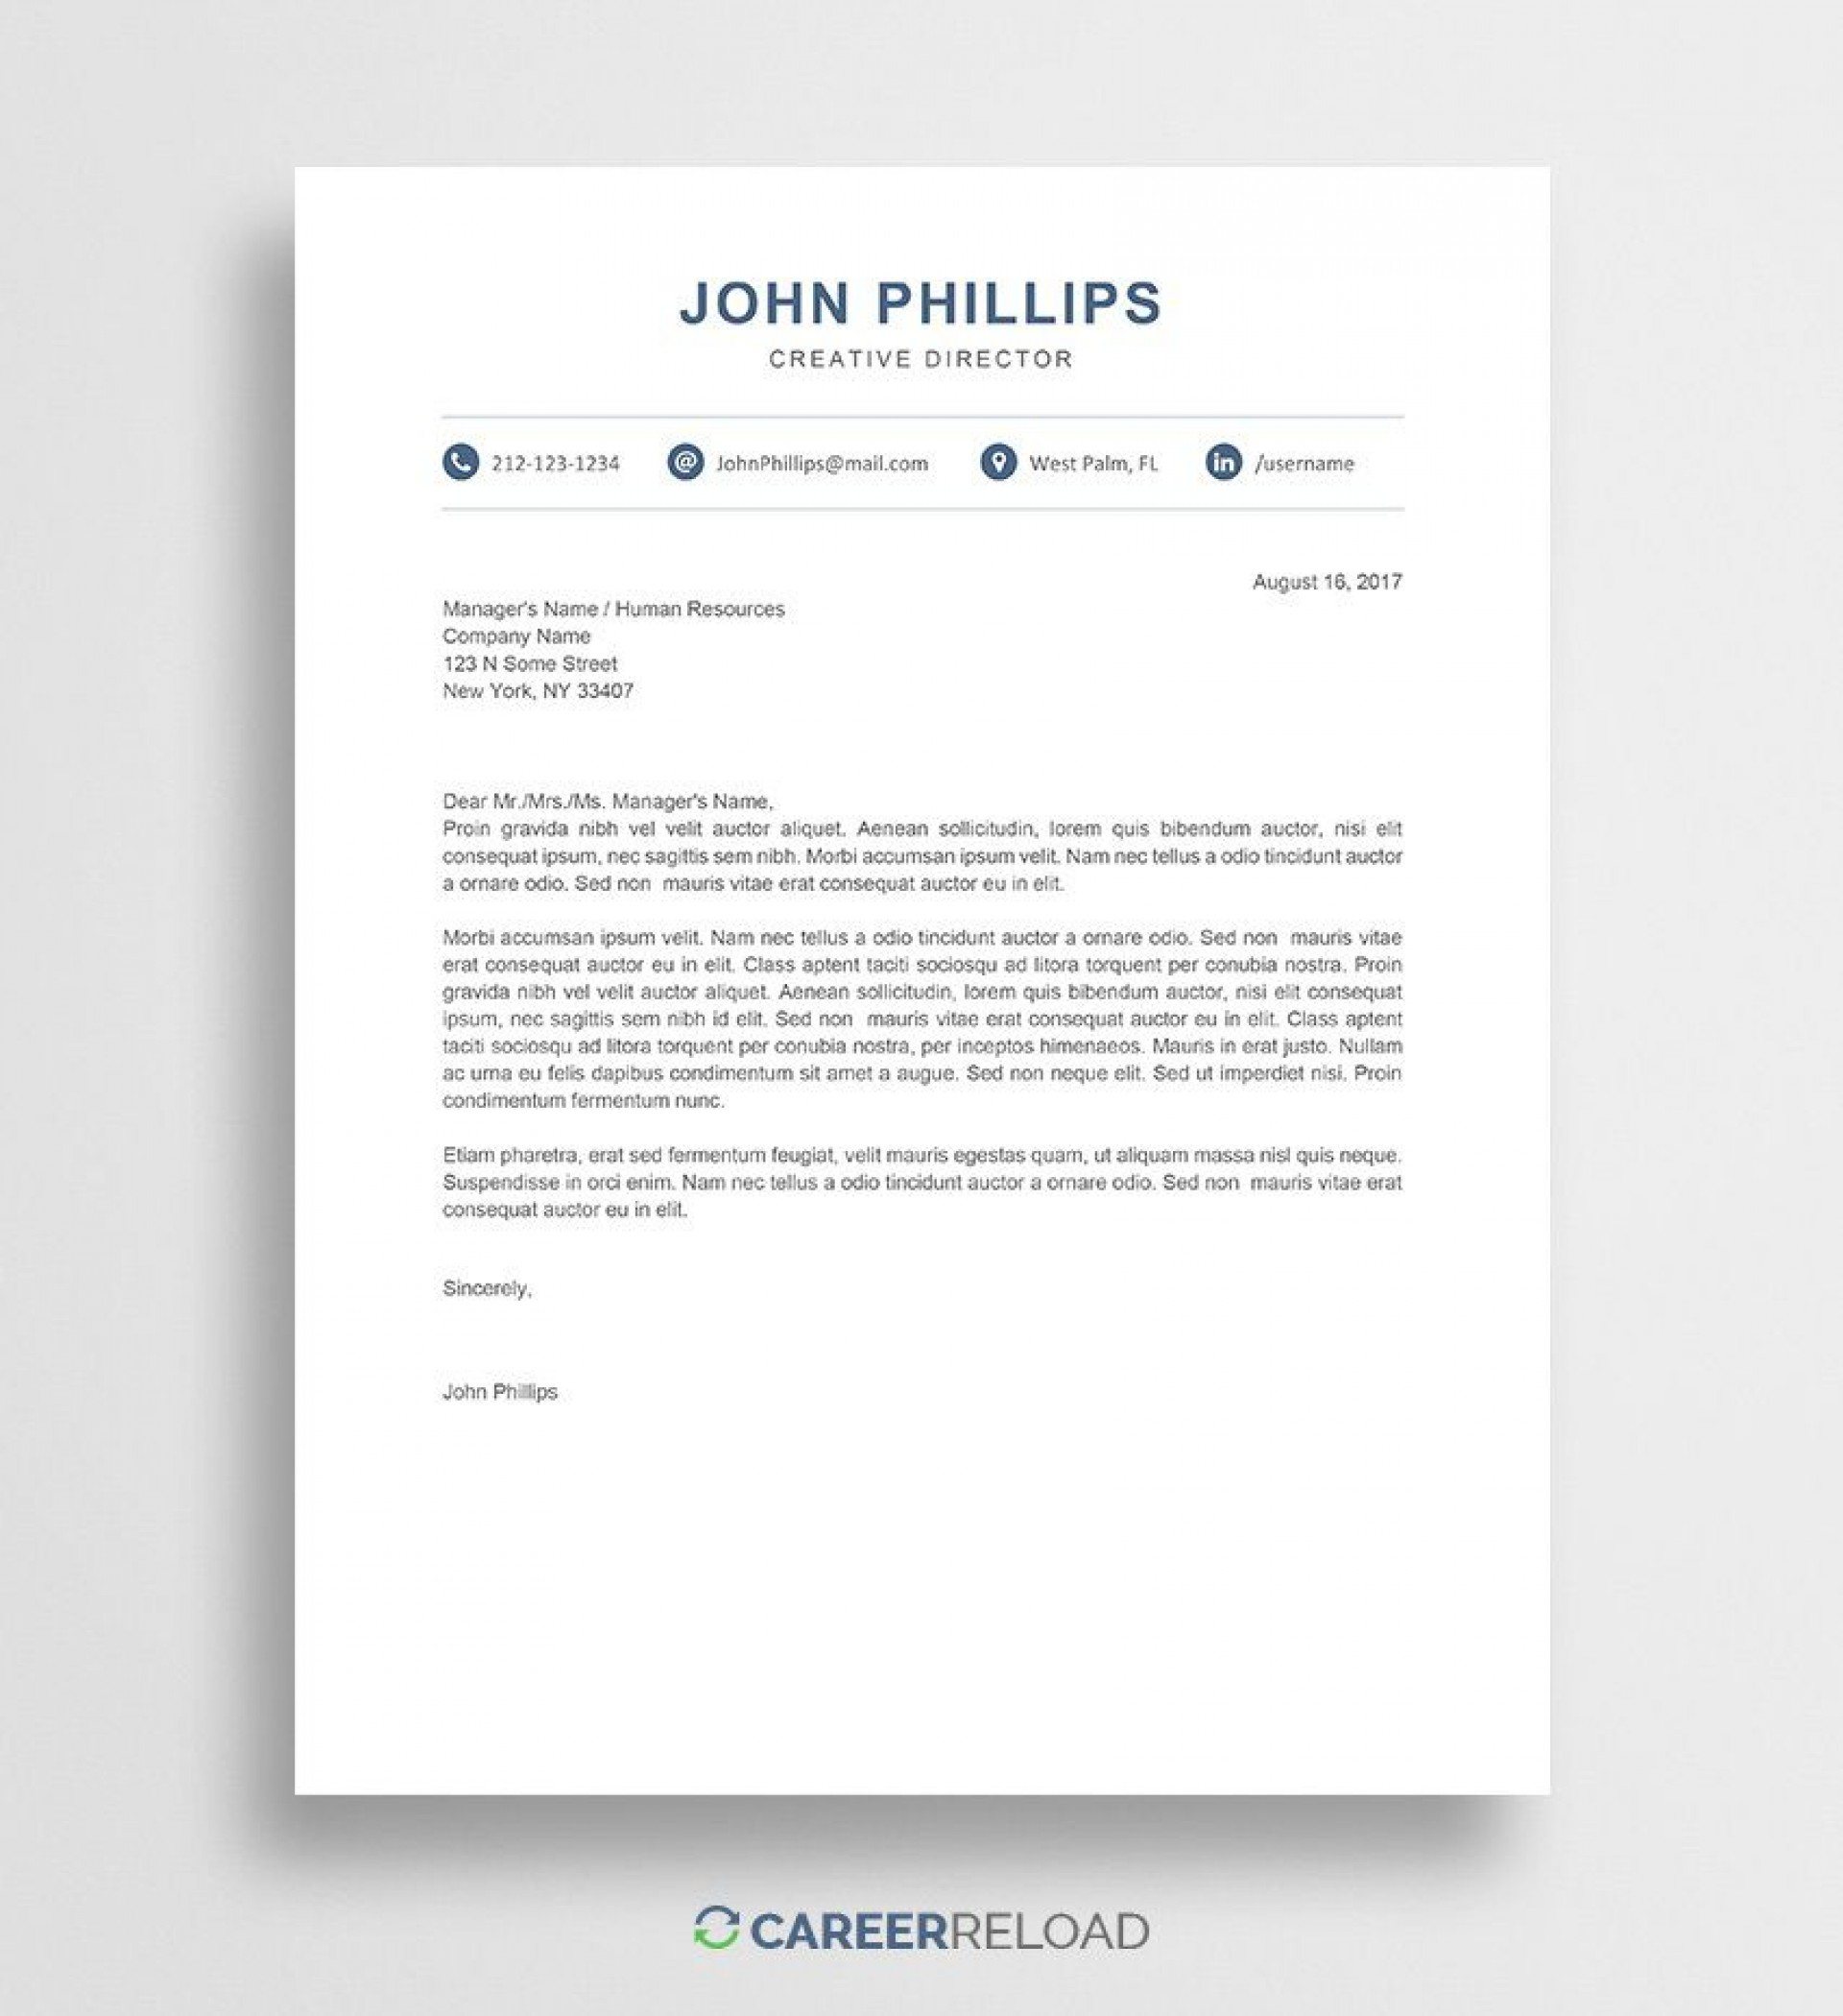 009 Excellent Microsoft Resume Cover Letter Template Free Inspiration 1920